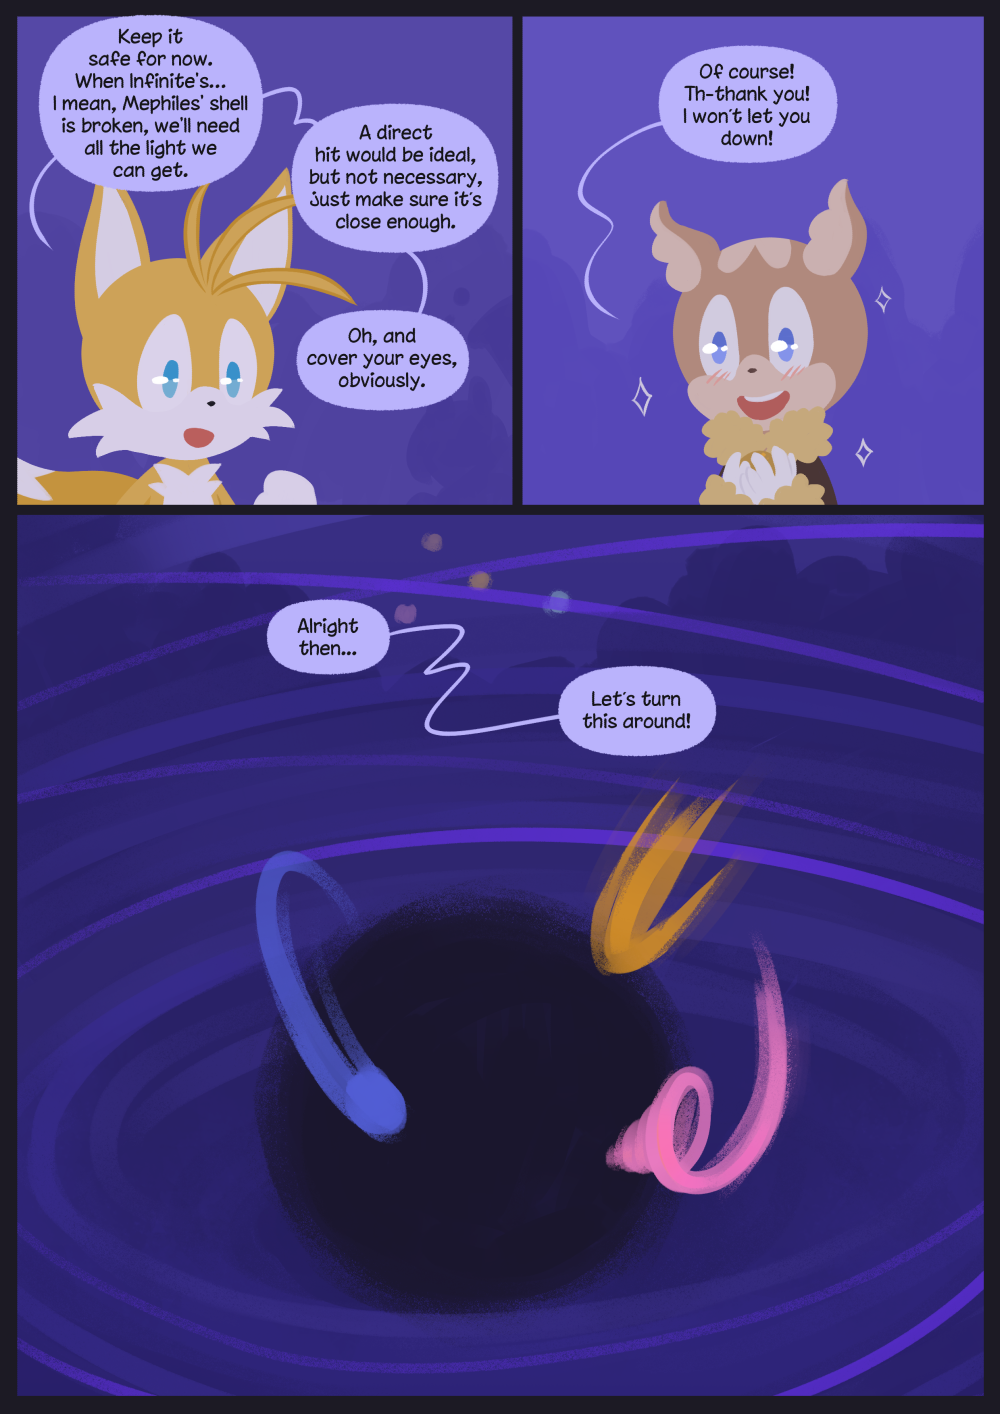 Tails has learned from his chapter 2 mistakes